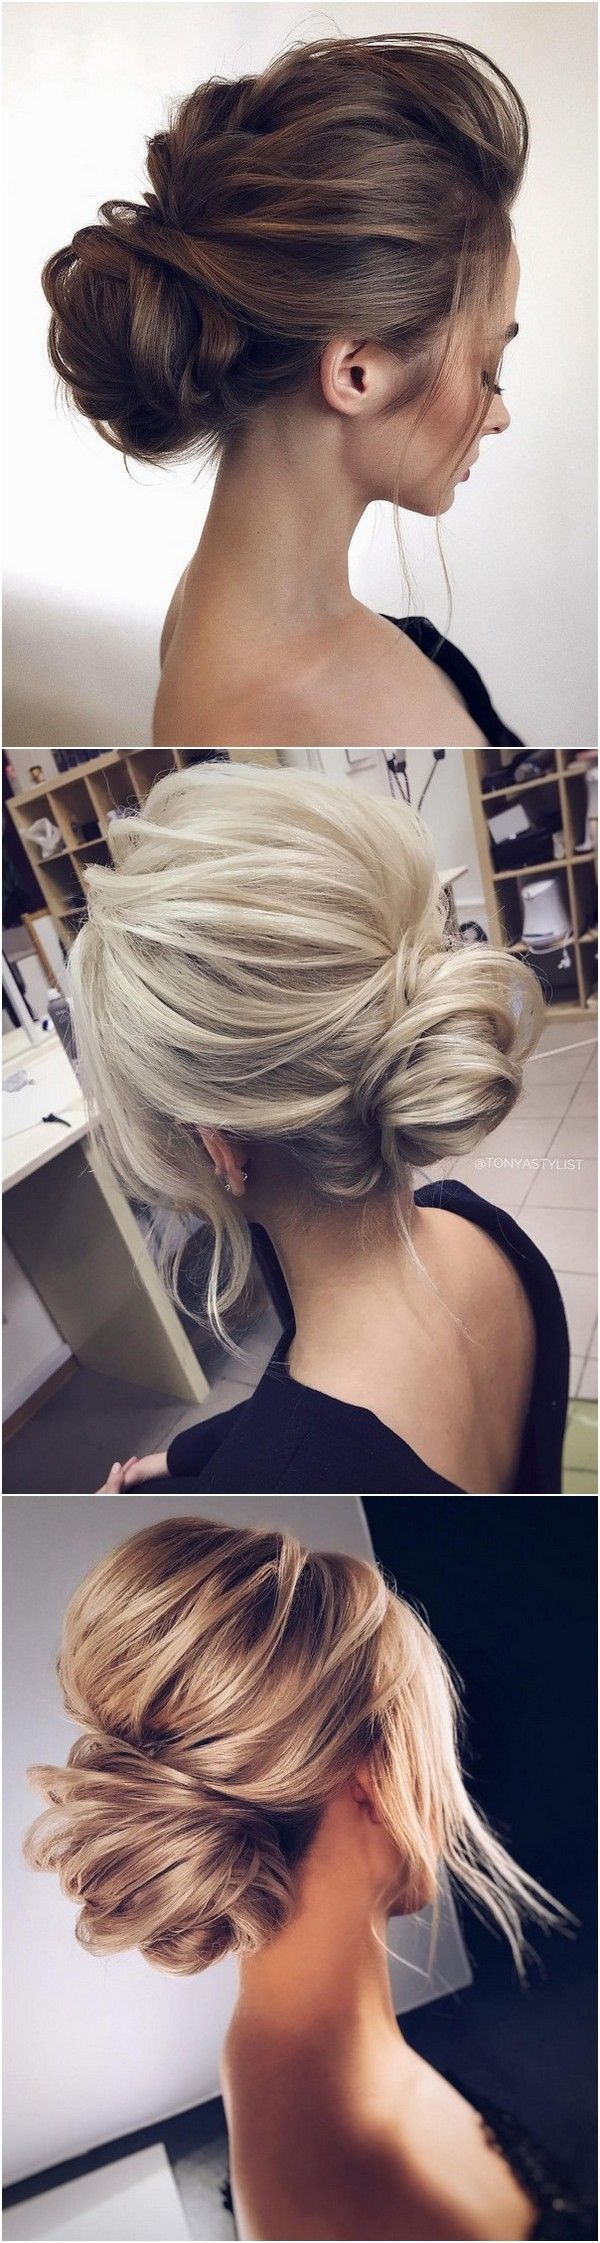 elegant updo wedding hairstyles#weddinghairstyles #bridalfashion #updohairstyles